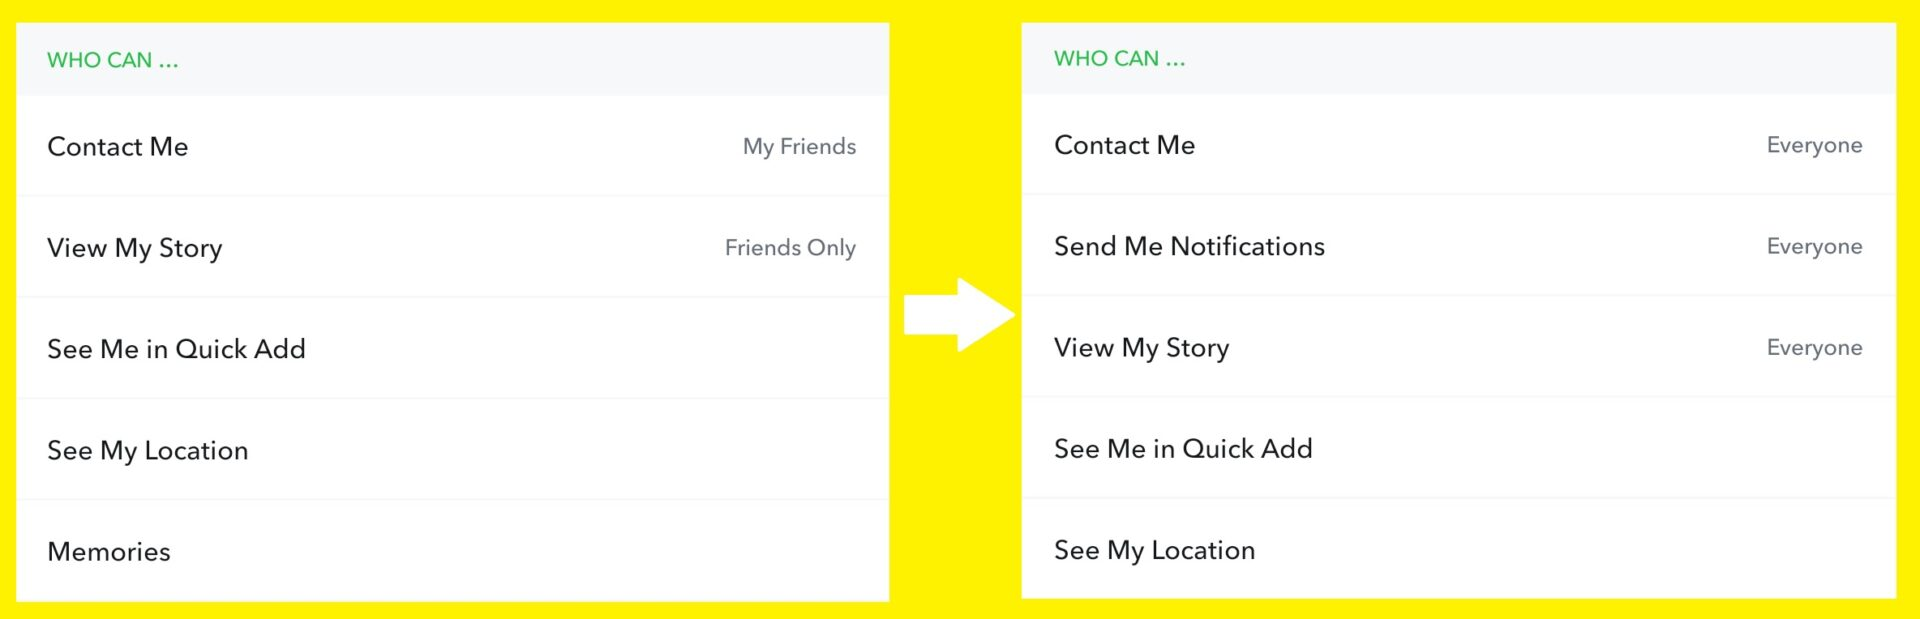 How to get a public profile on Snapchat 2